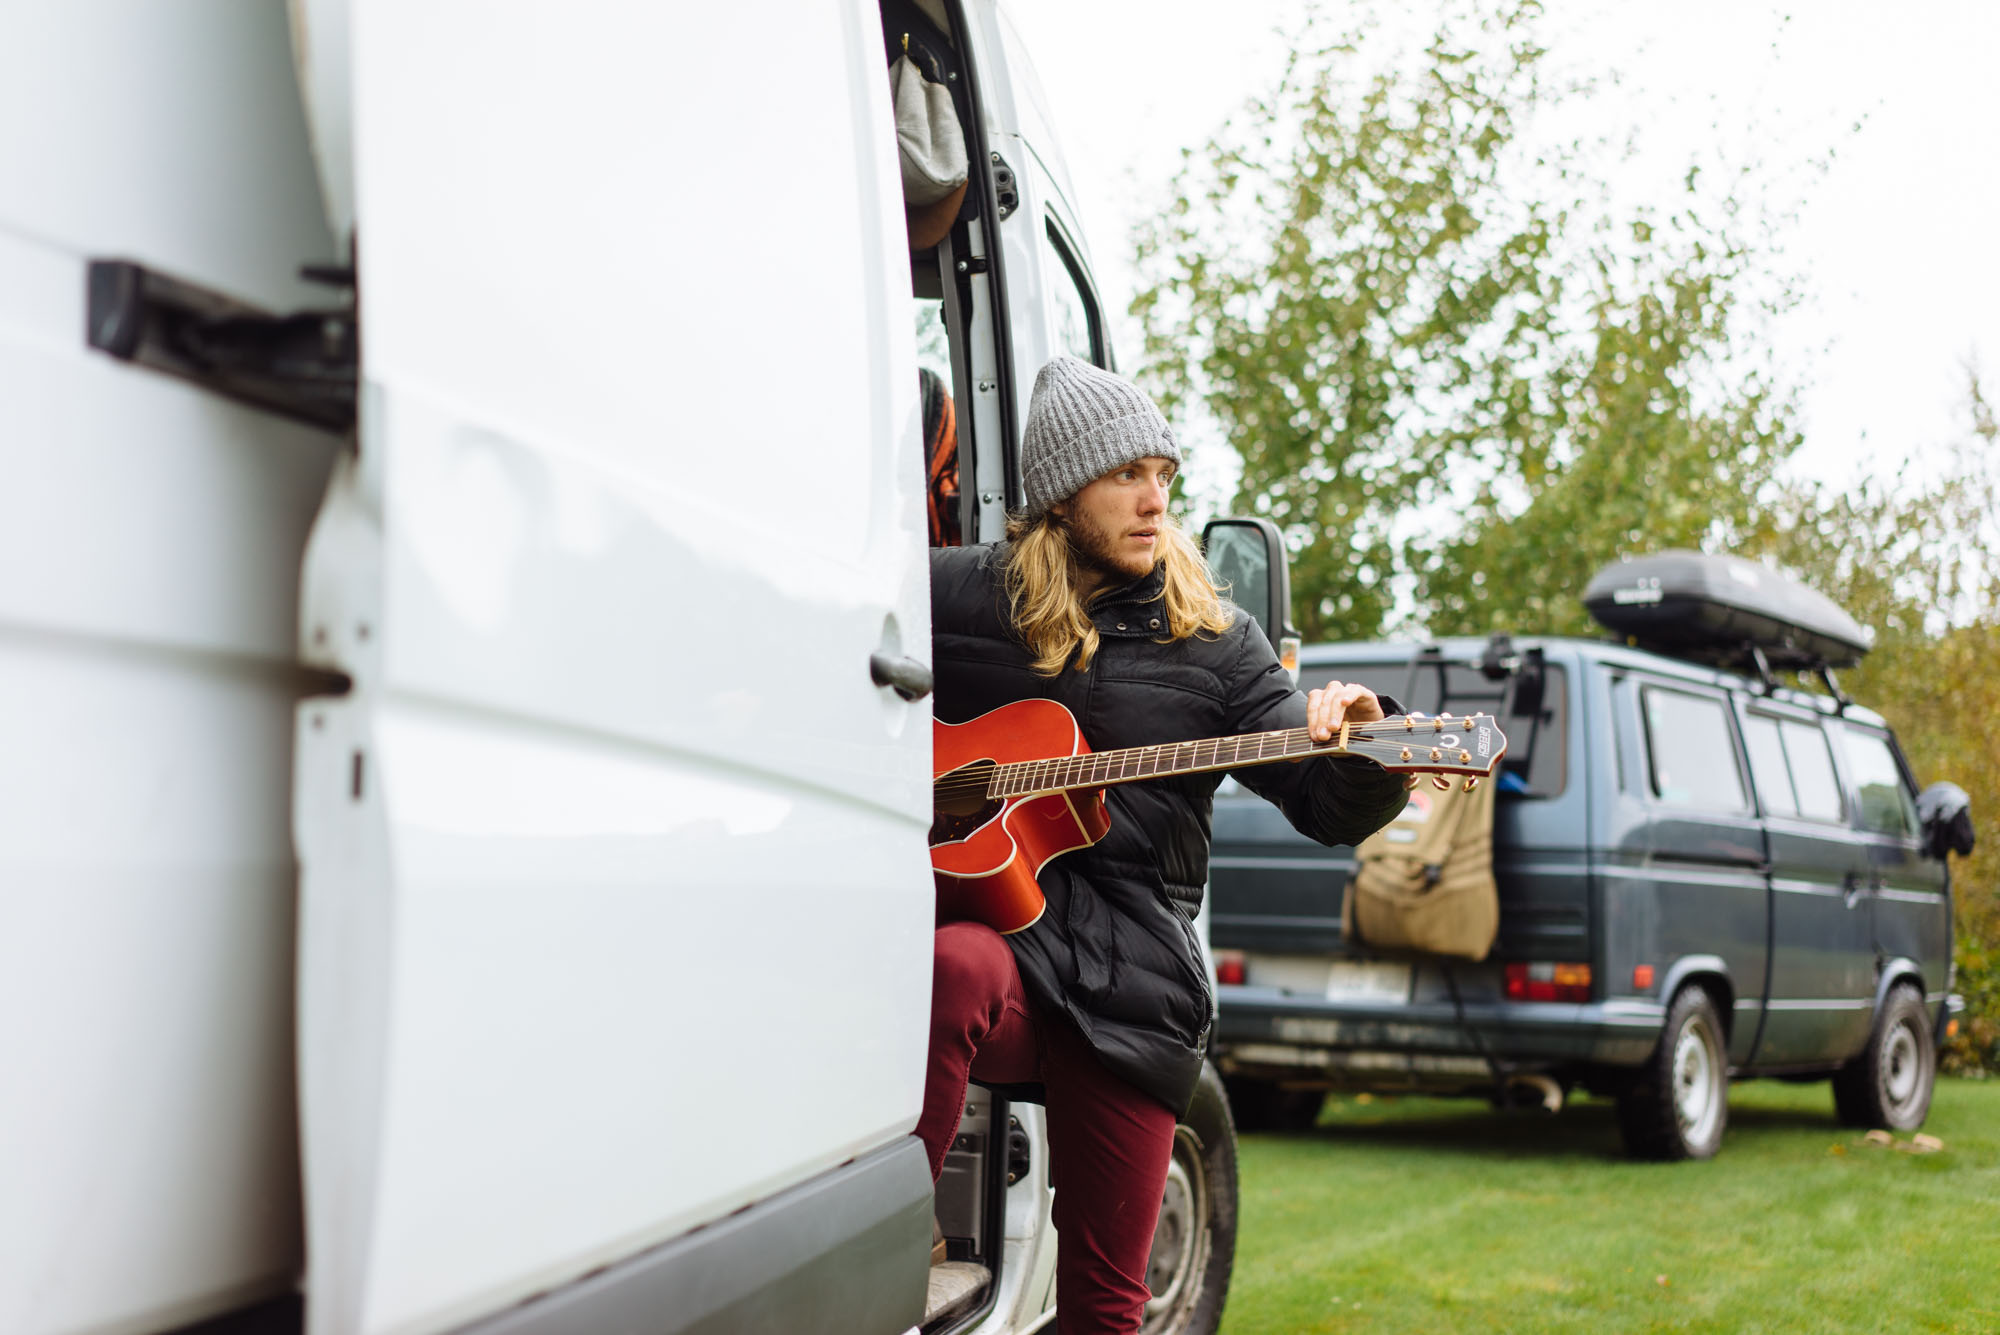 Anthony playing his guitar in his van